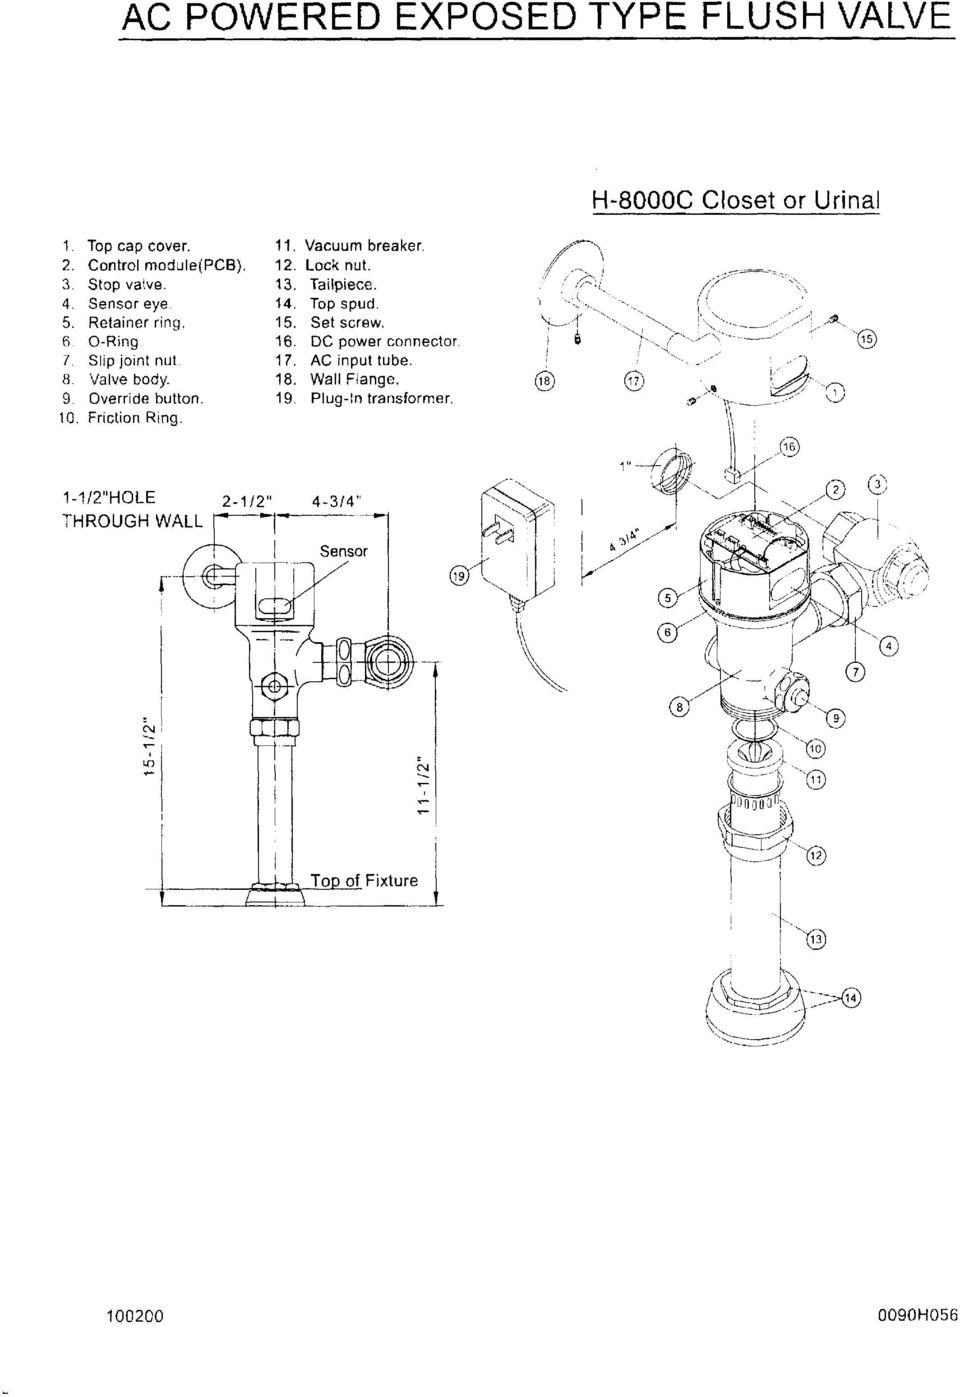 Hydrotek International Inc Pdf Above Ill 1 Ac Powered Solenoid Coils Controlled By A Triac In An 11 12 13 14 15 16 17 18